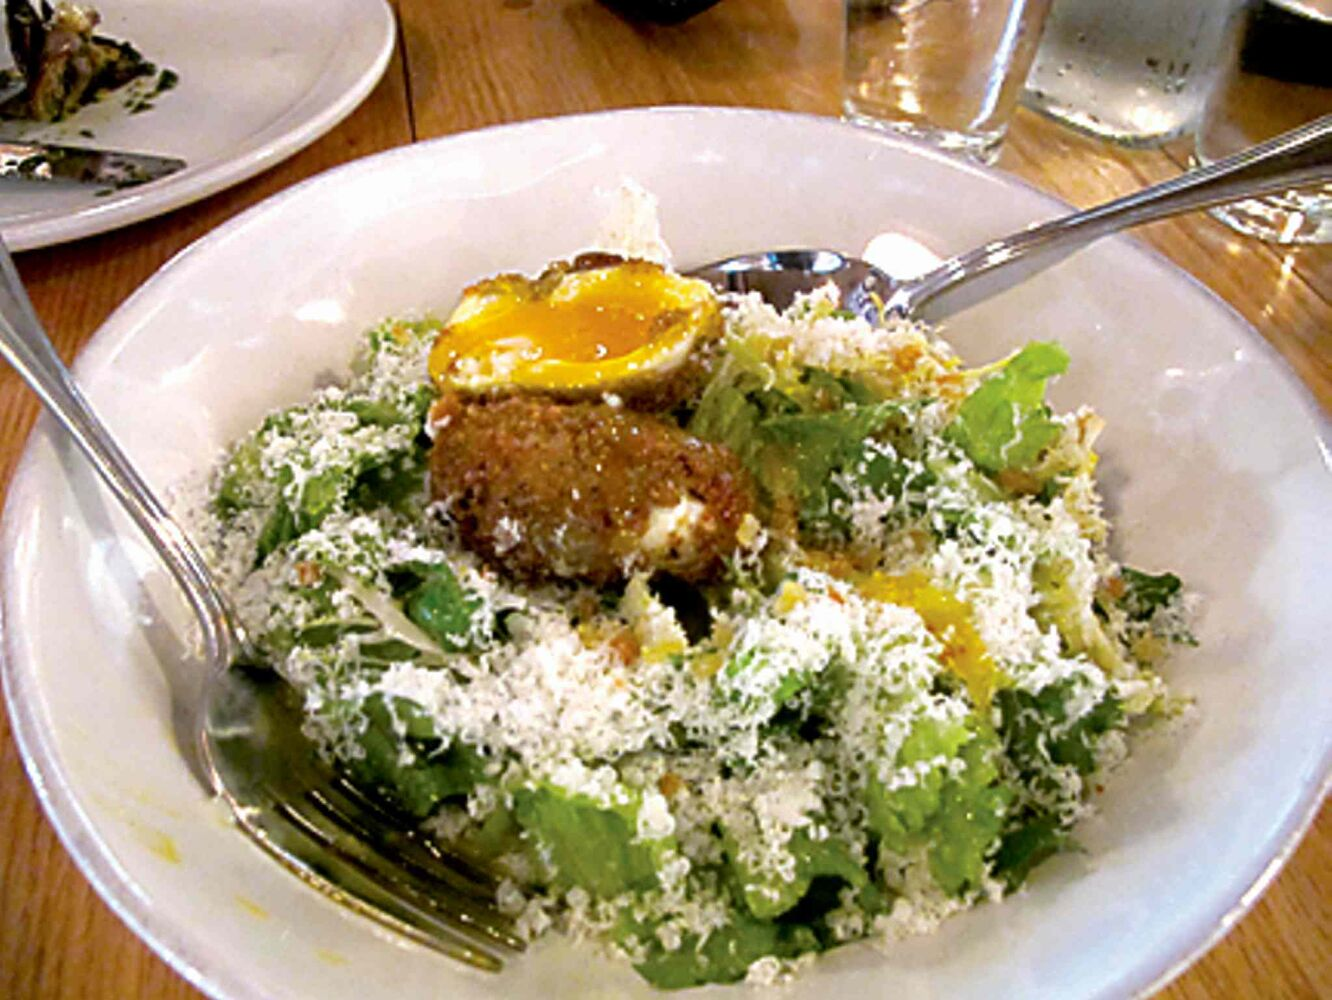 Caesar salad with deep-fried egg from Mani Osteria & Bar. (Jill Wilson / Winnipeg Free Press)